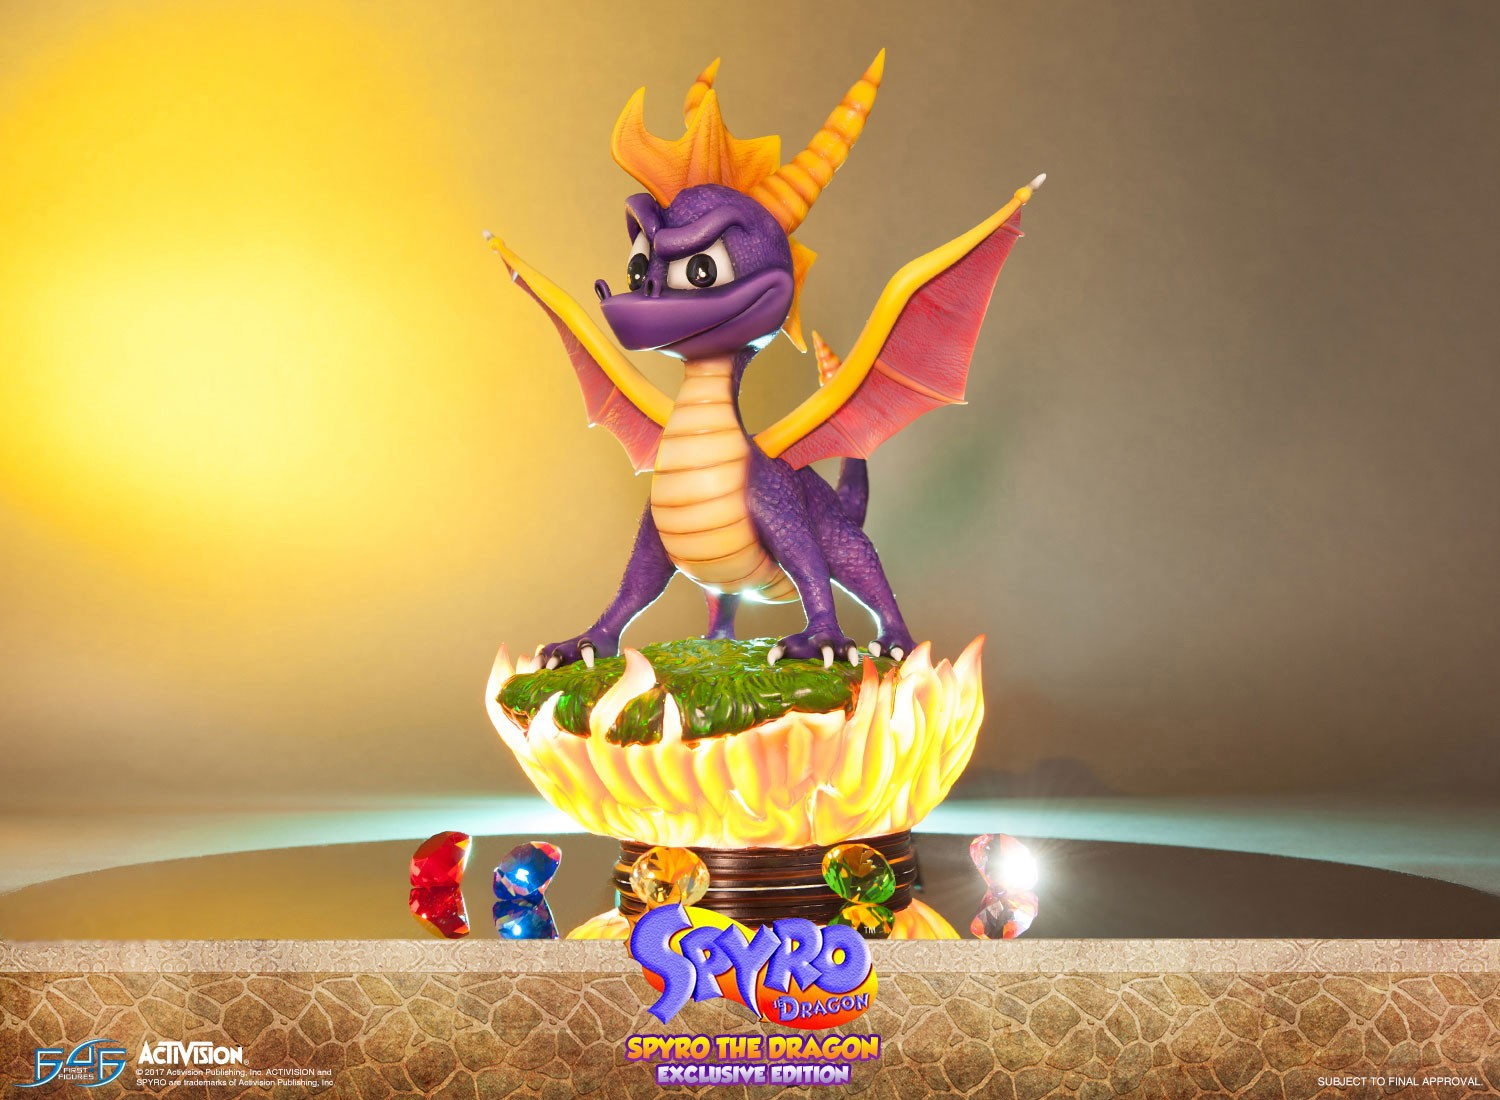 Spyro the dragon x part 1 - 3 10